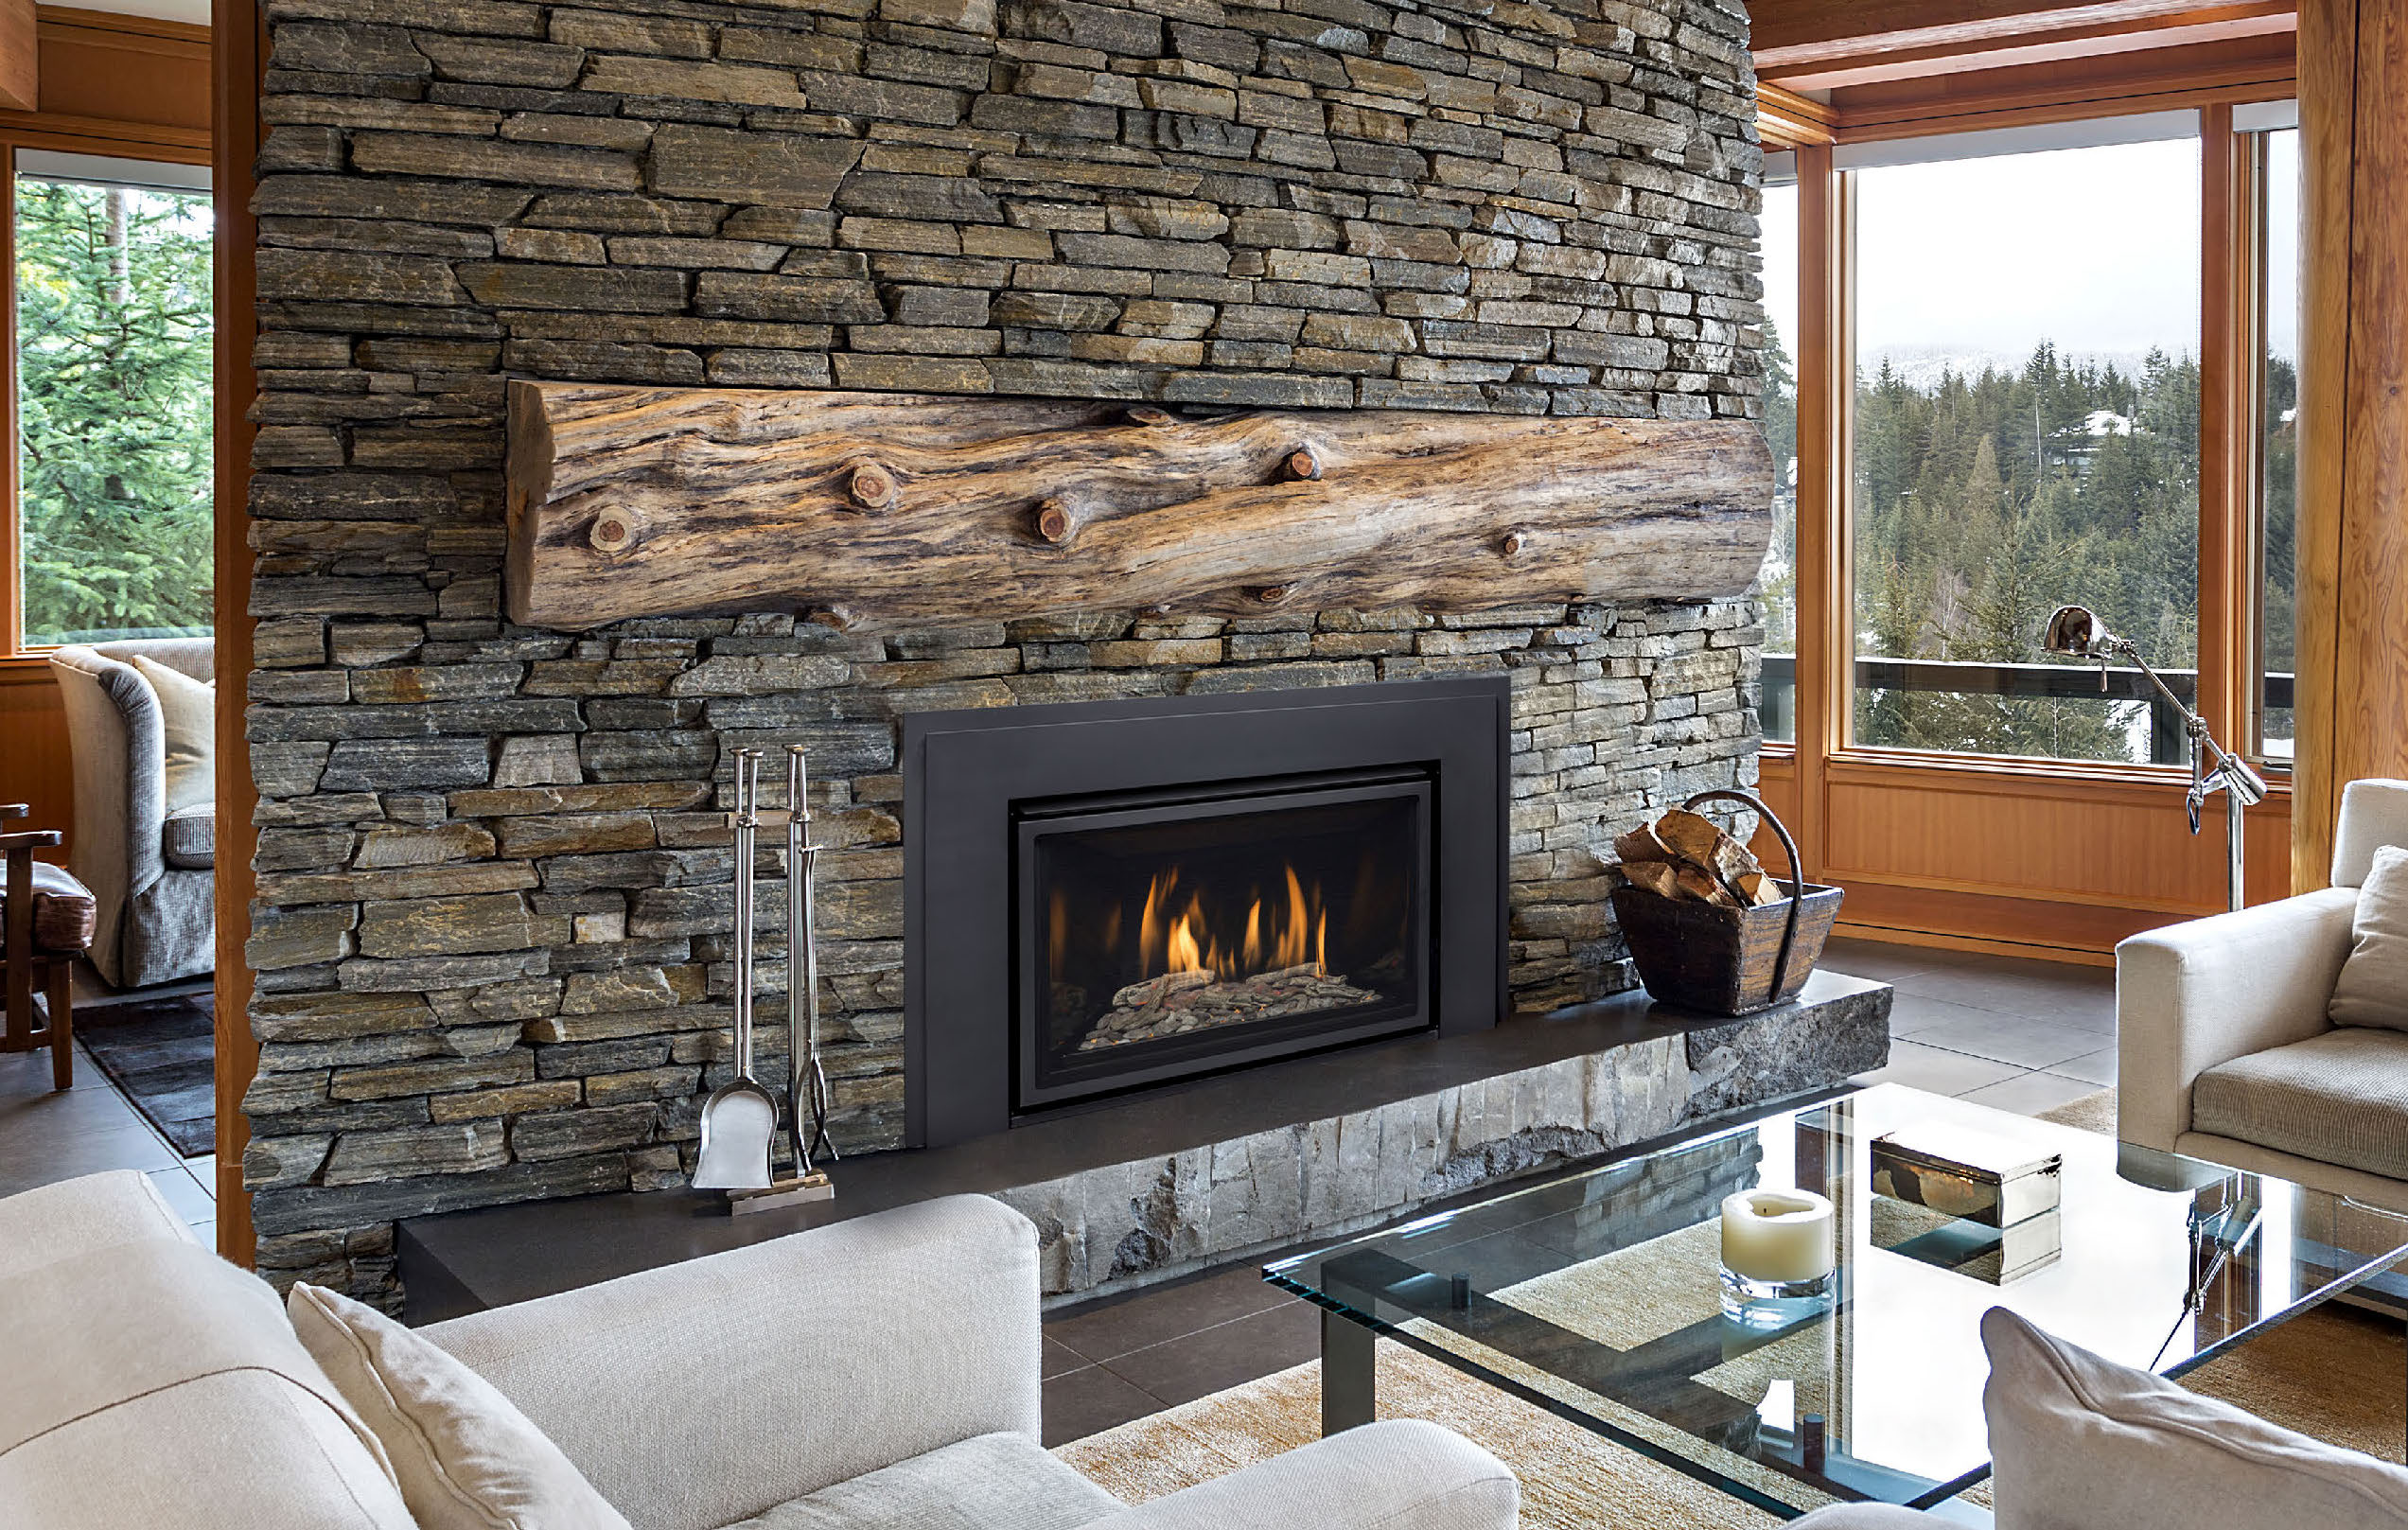 montigo 34fid gas fireplace insert full Top Result 50 Unique Best Wood Fireplace Insert